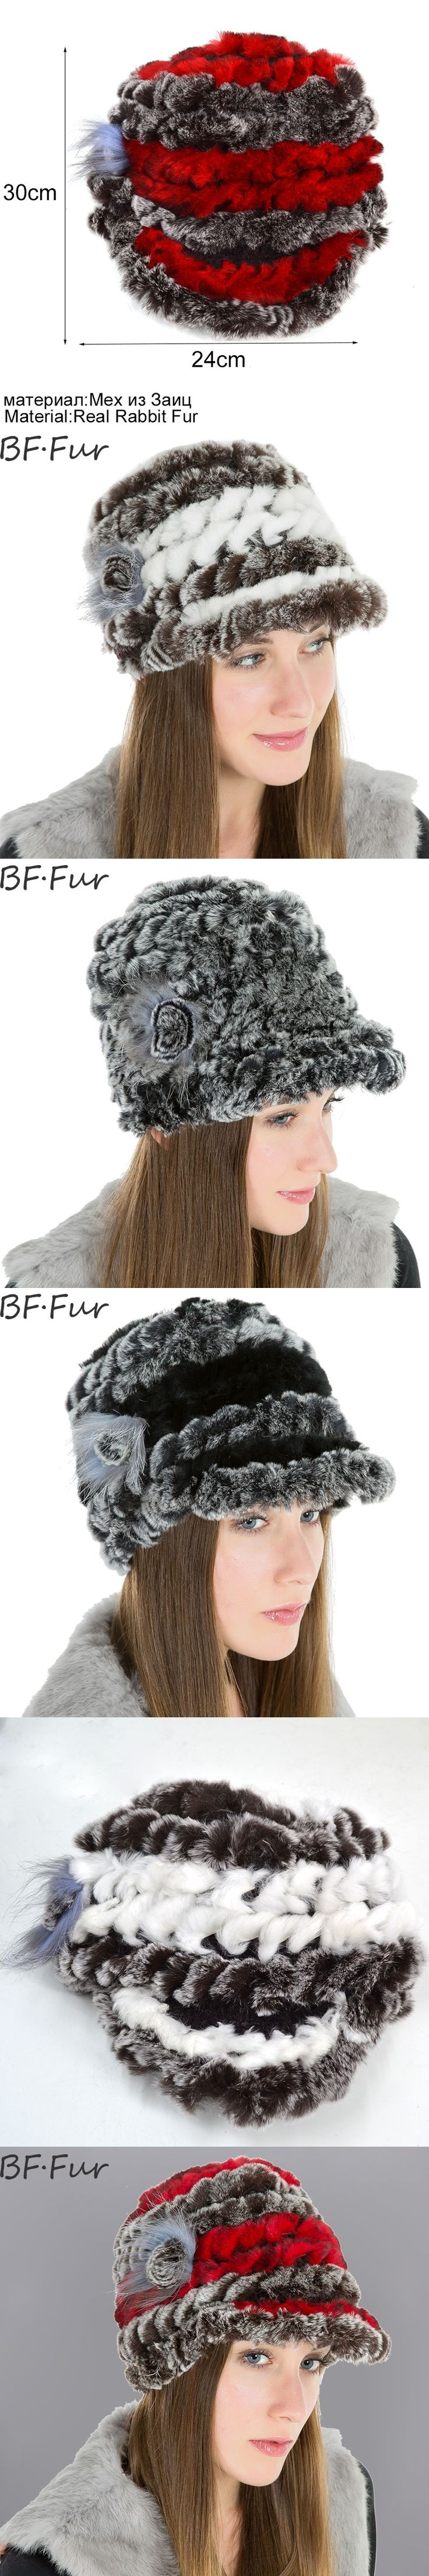 BFFUR Colorful Real Rabbit Fur Beanies Hats Female Winter Thick Warm Cap Women's Casual Bonnet Knitted Cotton Hat Ladies Brand